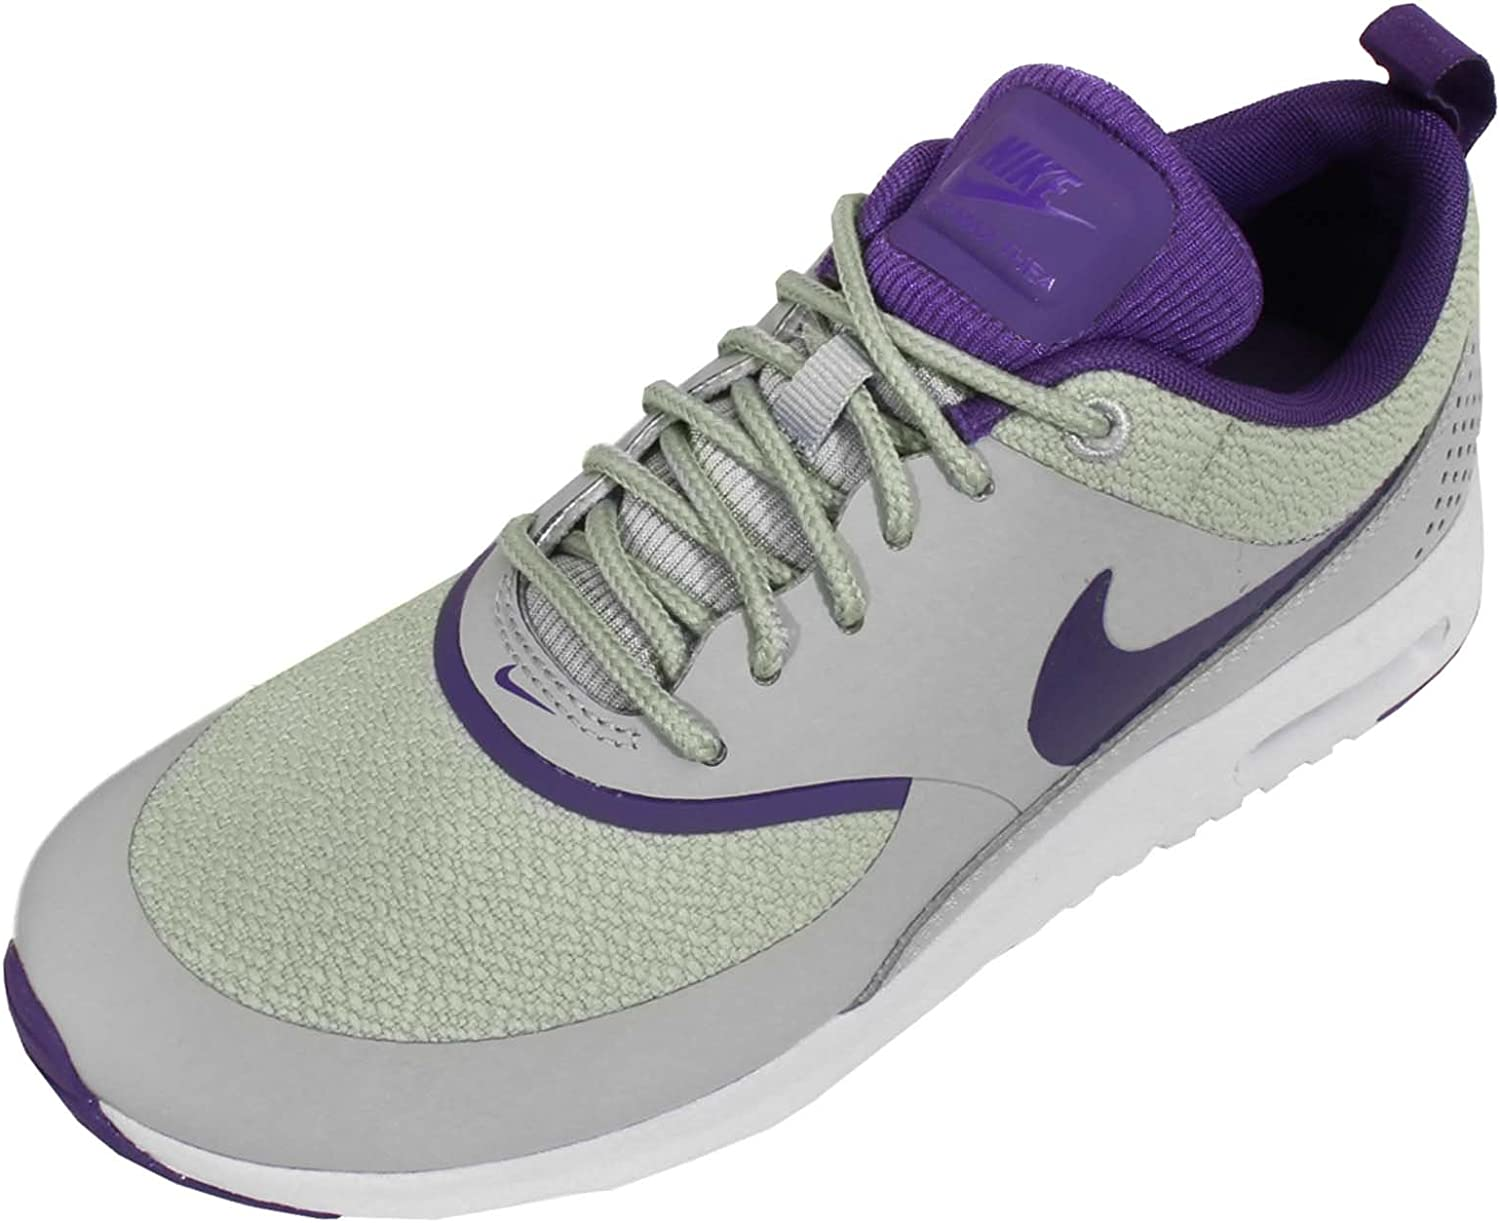 Top Max Trainer Low Nike Women's Air Thea bYfv76gy